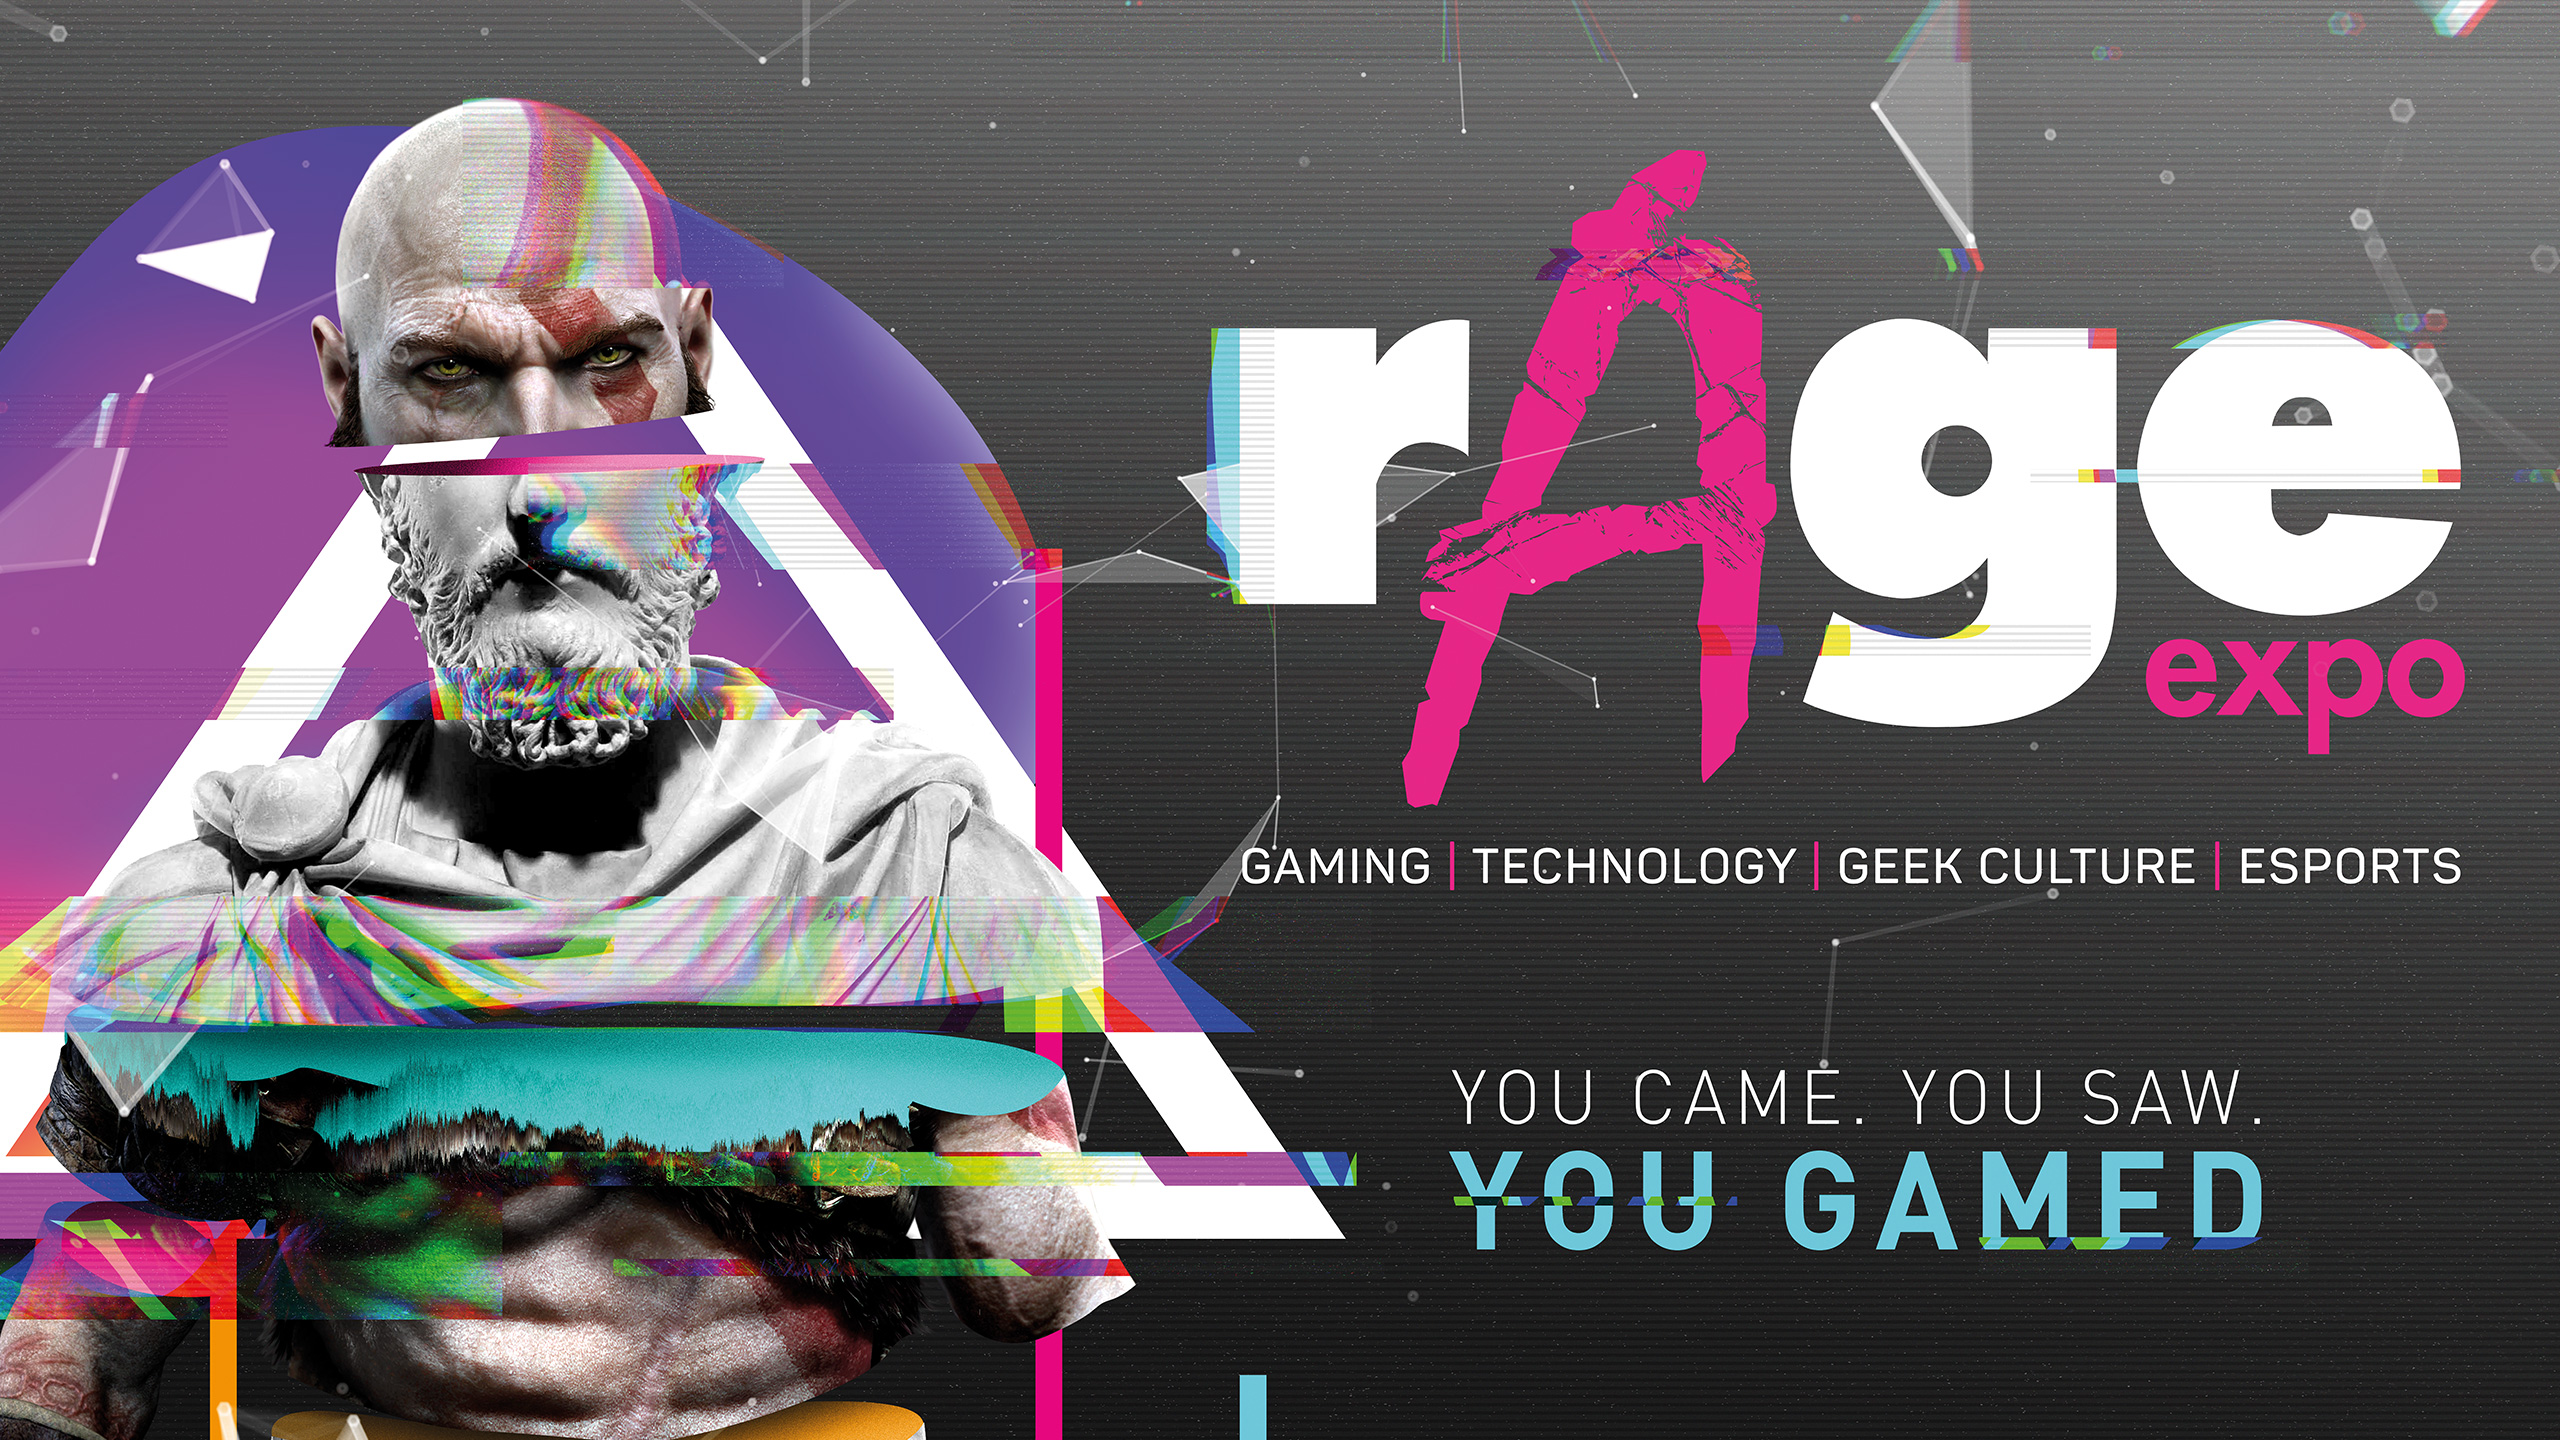 rAge Expo design with glitch effect